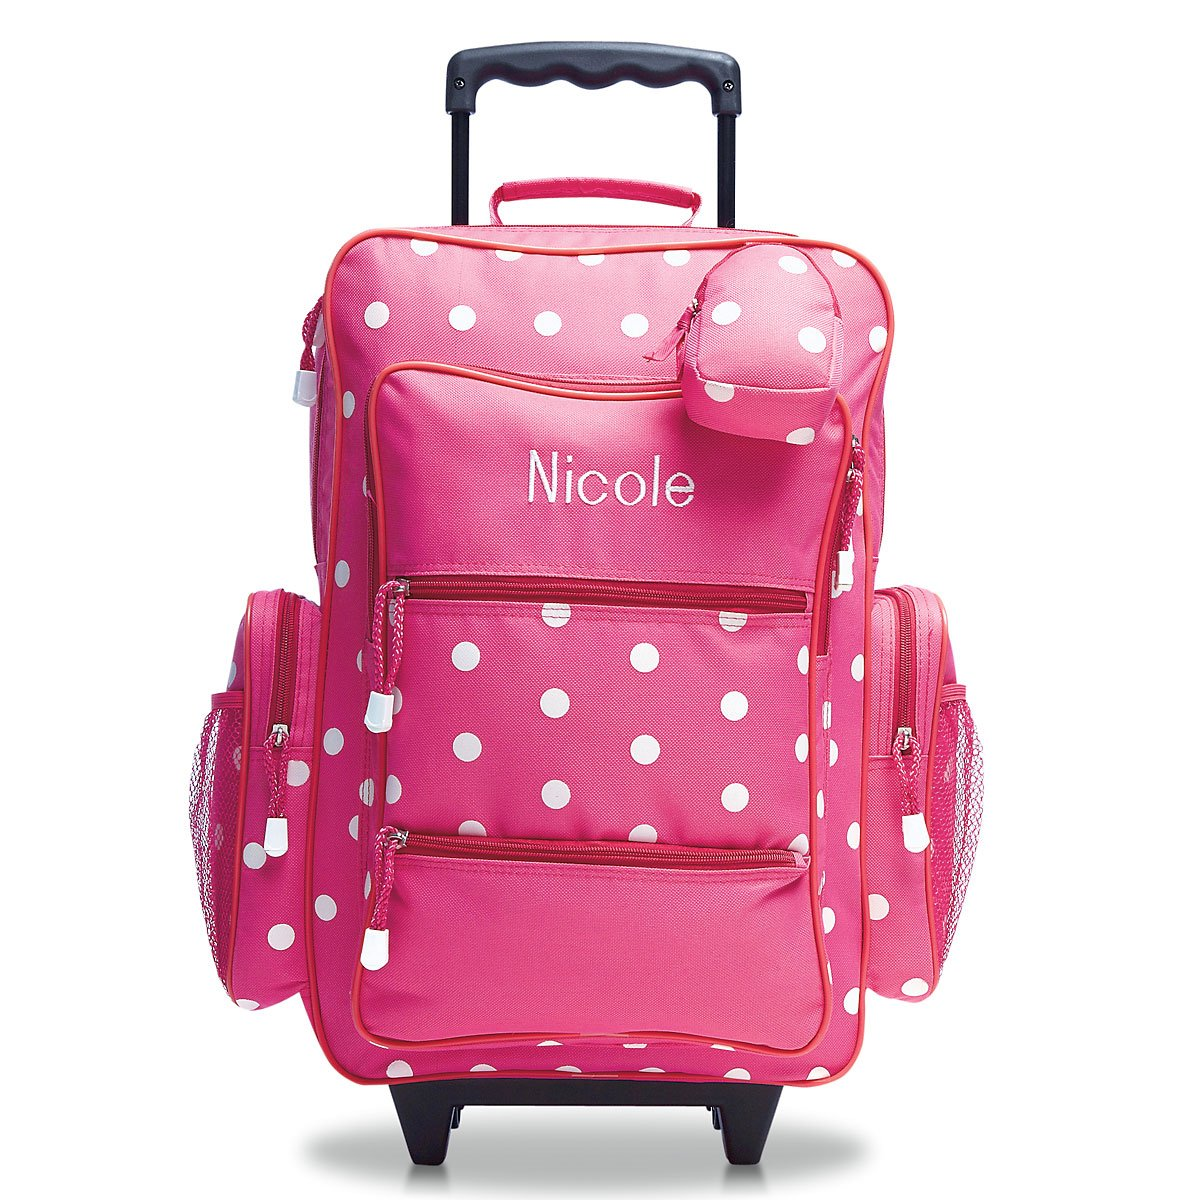 Personalized Rolling Luggage for Kids - Pink Polka Dot Design, 6'' x 15.5'' x 23''H, By Lillian Vernon